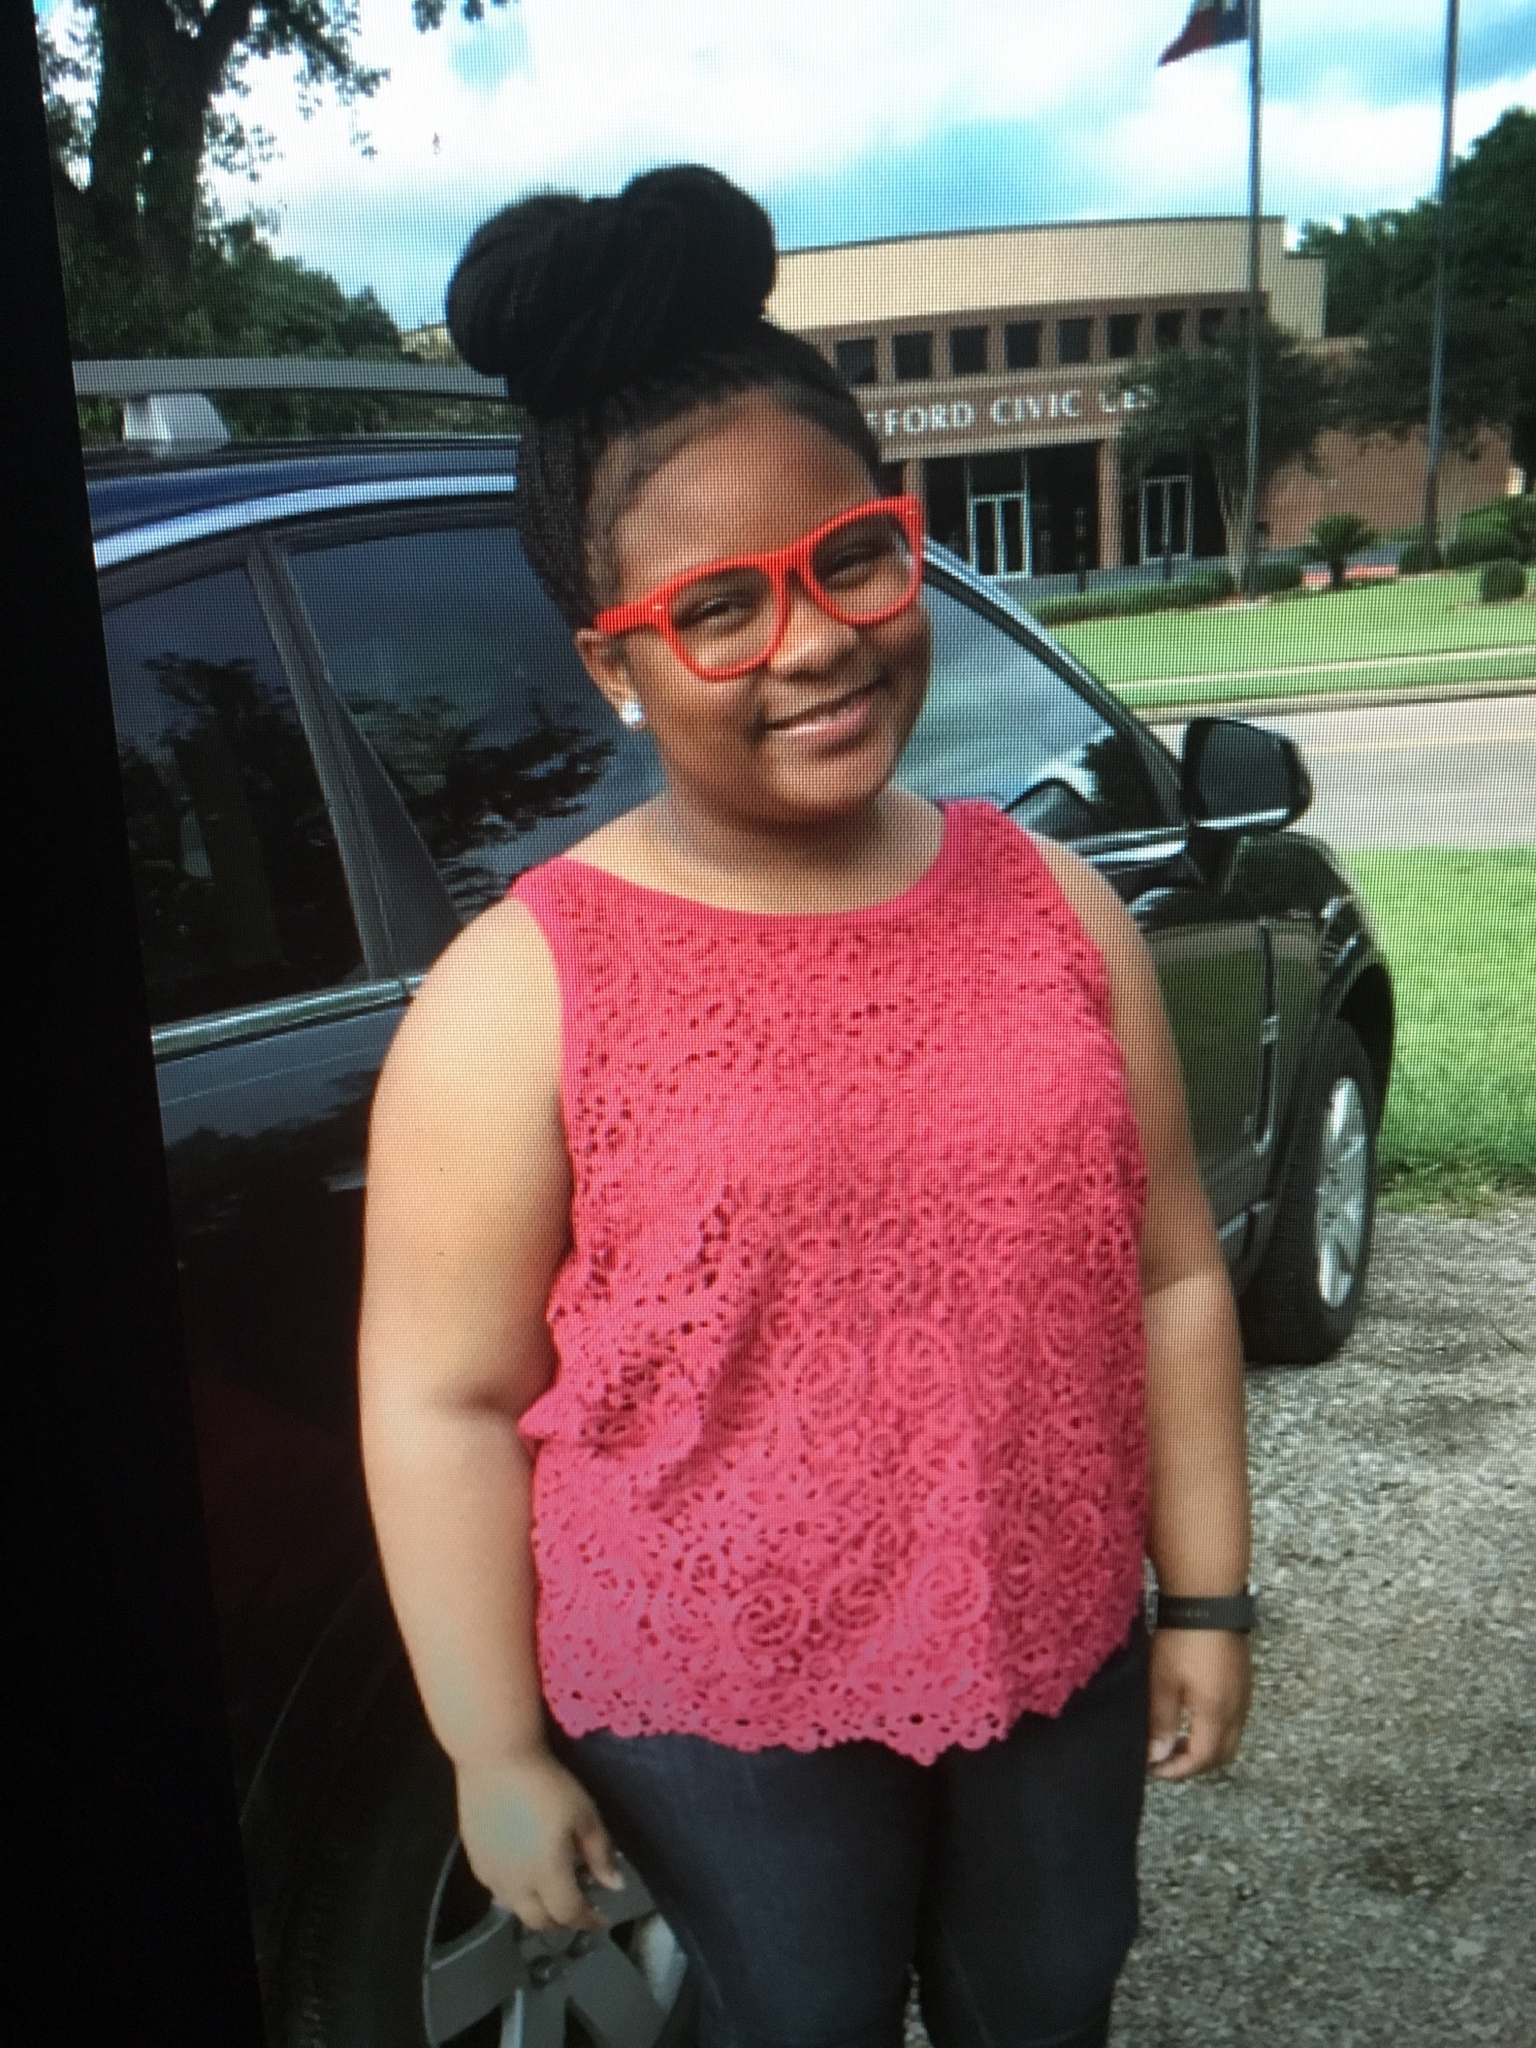 Missing 13 Year Old Boy: Missing 13-year-old Last Seen In Brazoria County